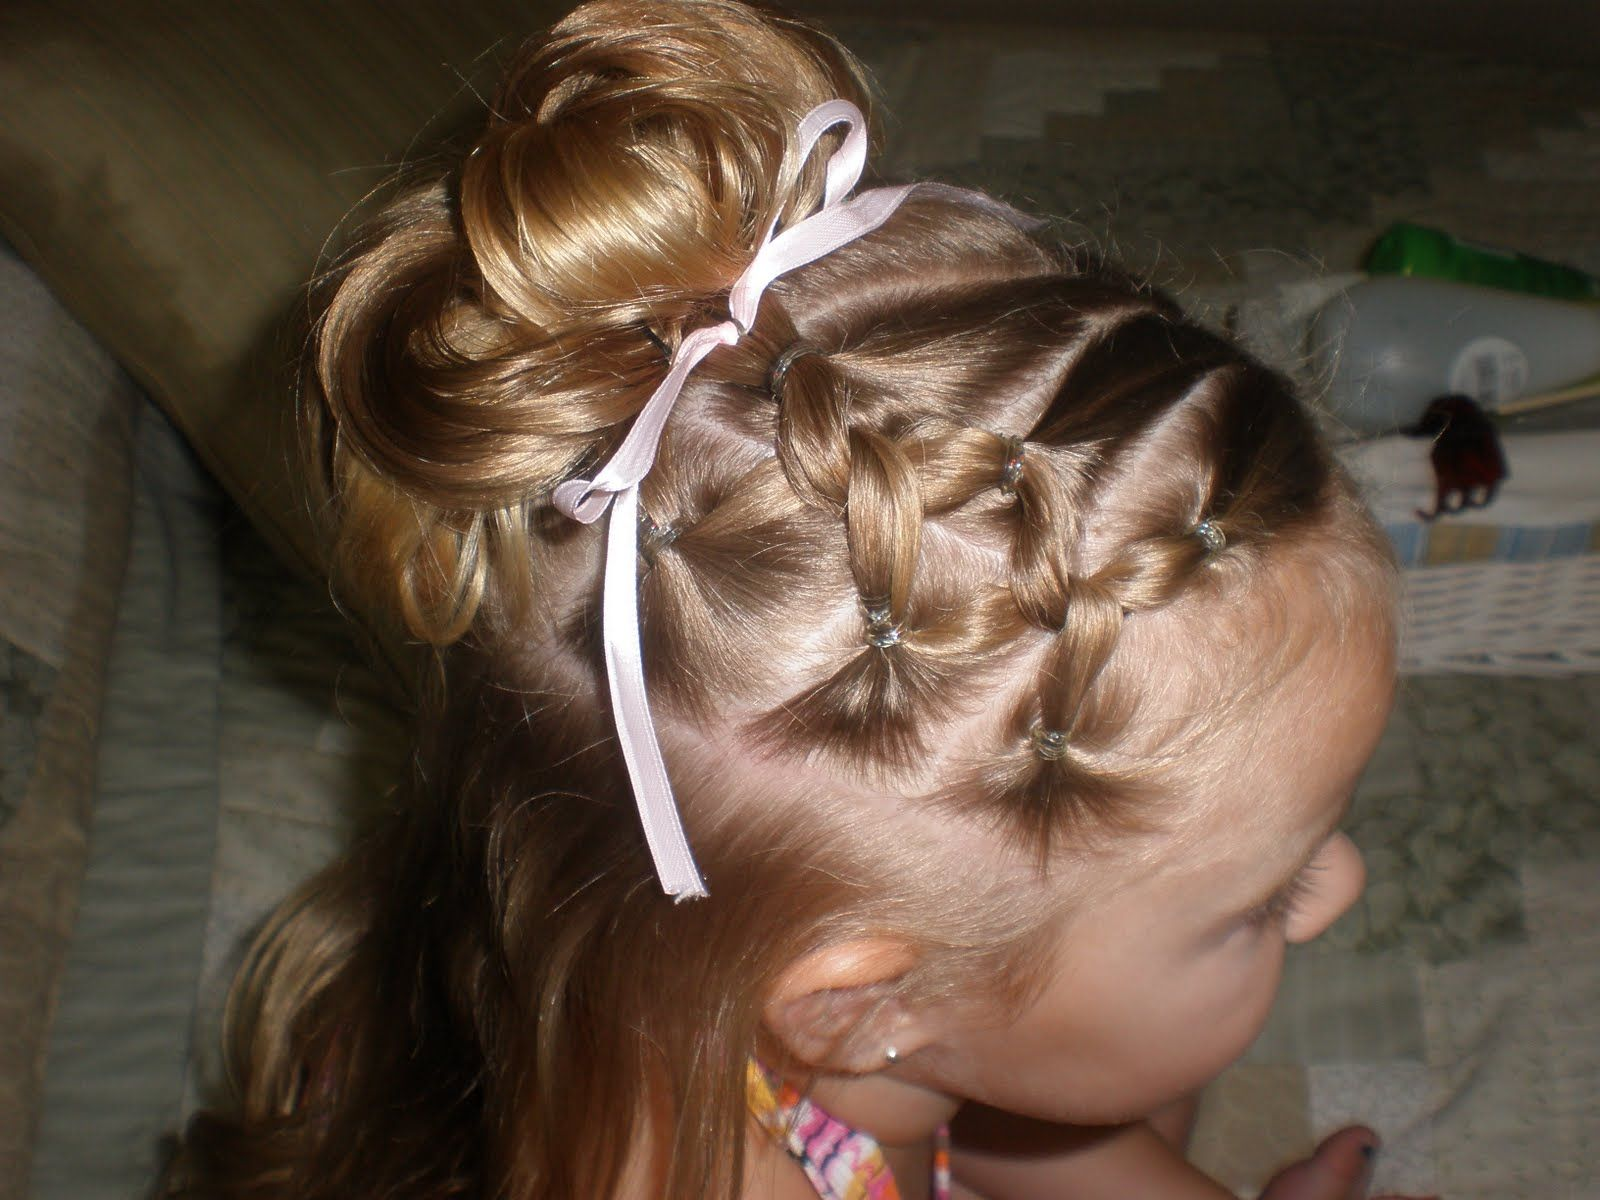 Pin by melissa hudson on hair girls hairdos hair hair styles